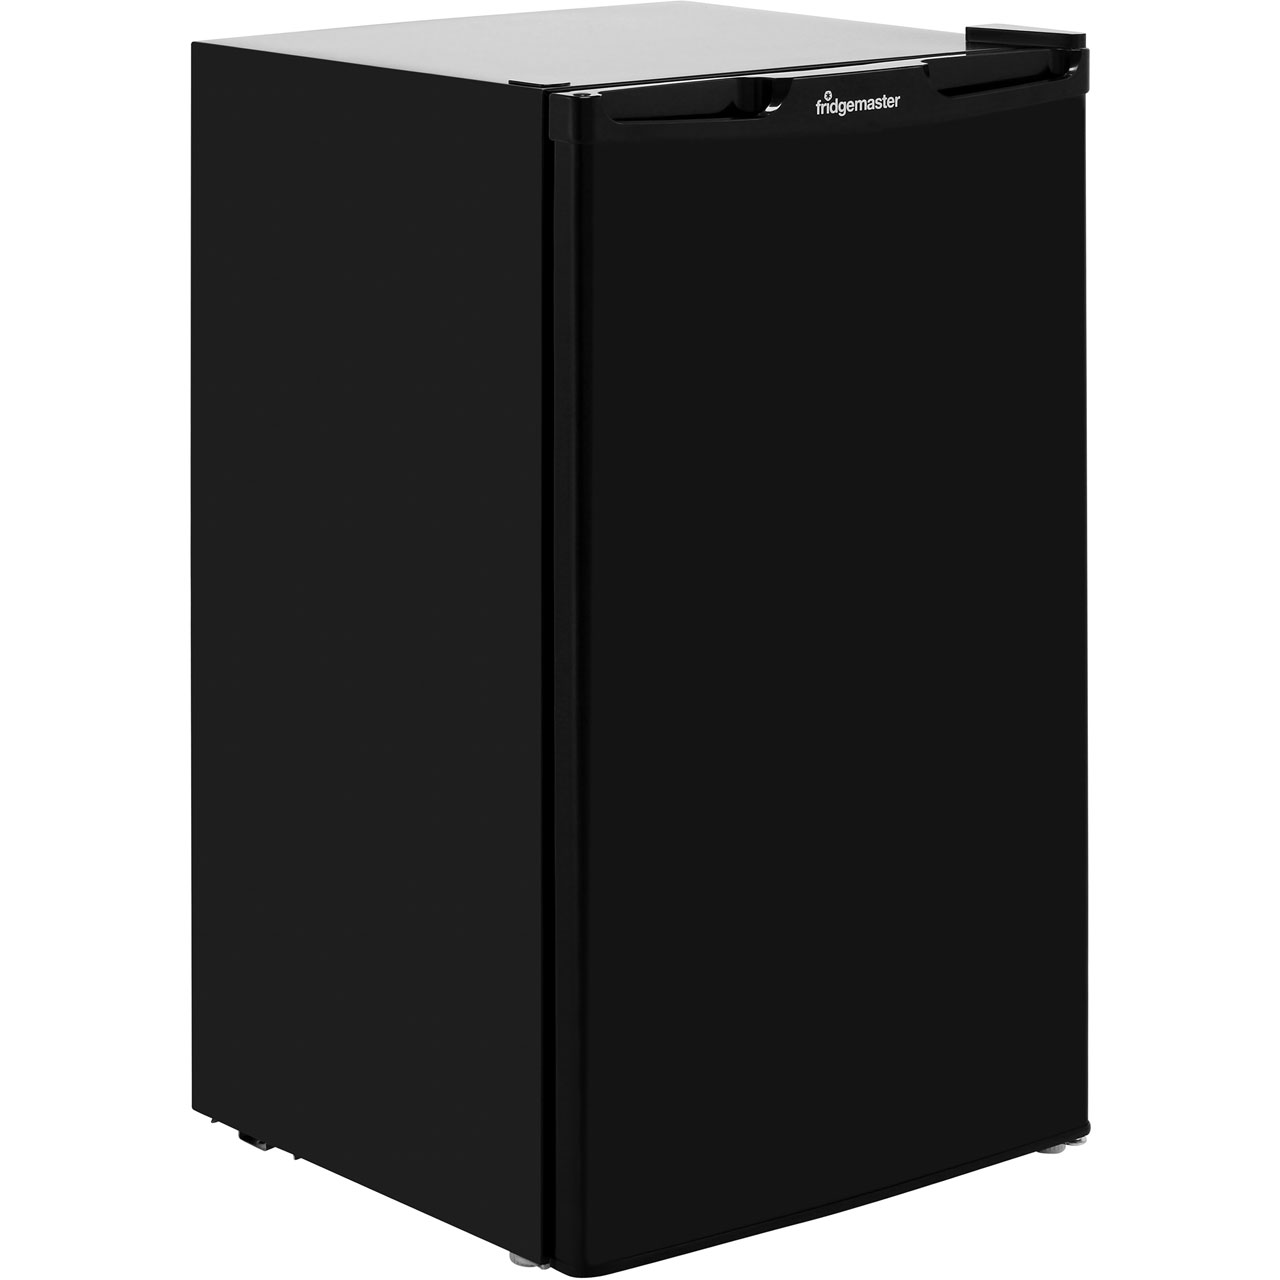 Fridgemaster MUL49102B Free Standing Larder Fridge in Black